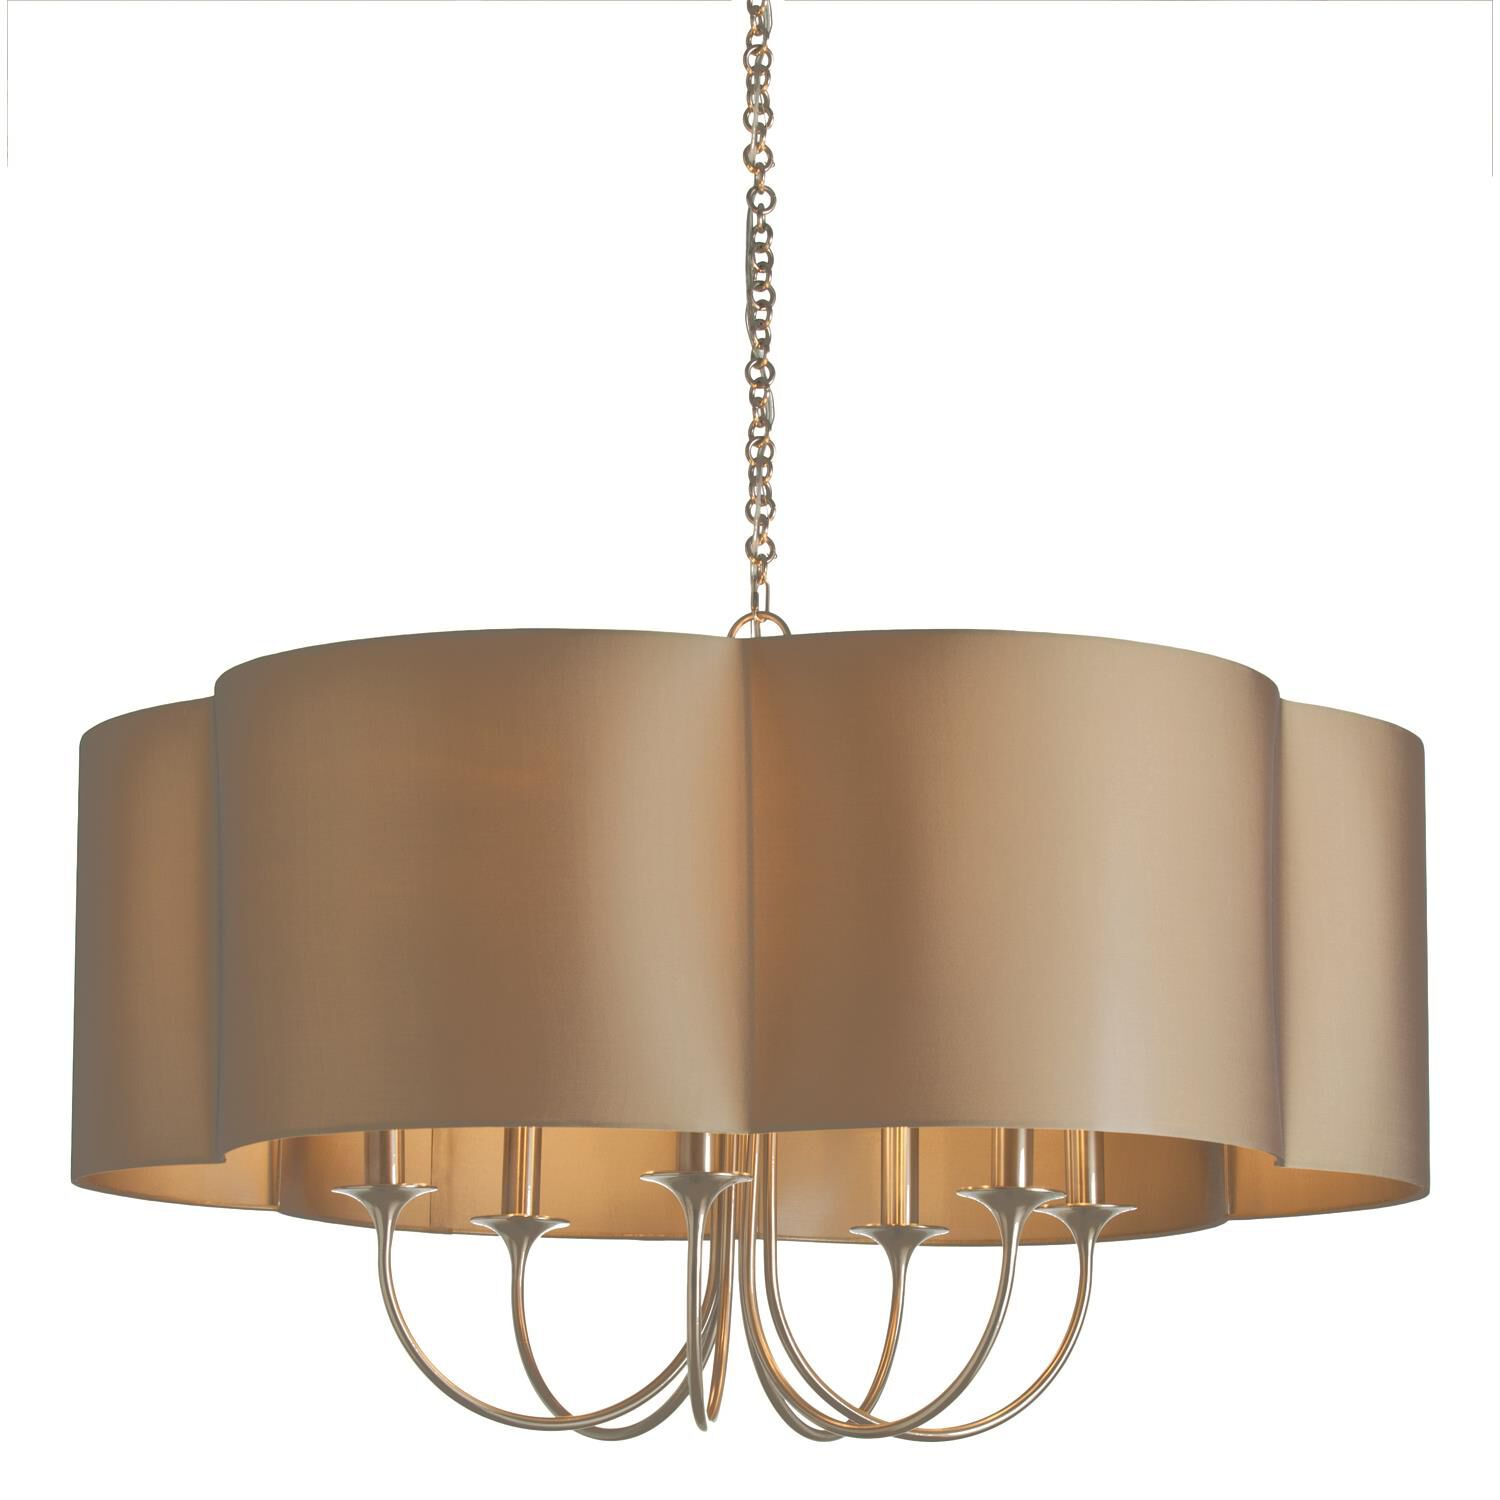 Arteriors Home Rittenhouse 42 Inch 6 Light Chandelier Rittenhouse - 89420 - Transitional Chandelier